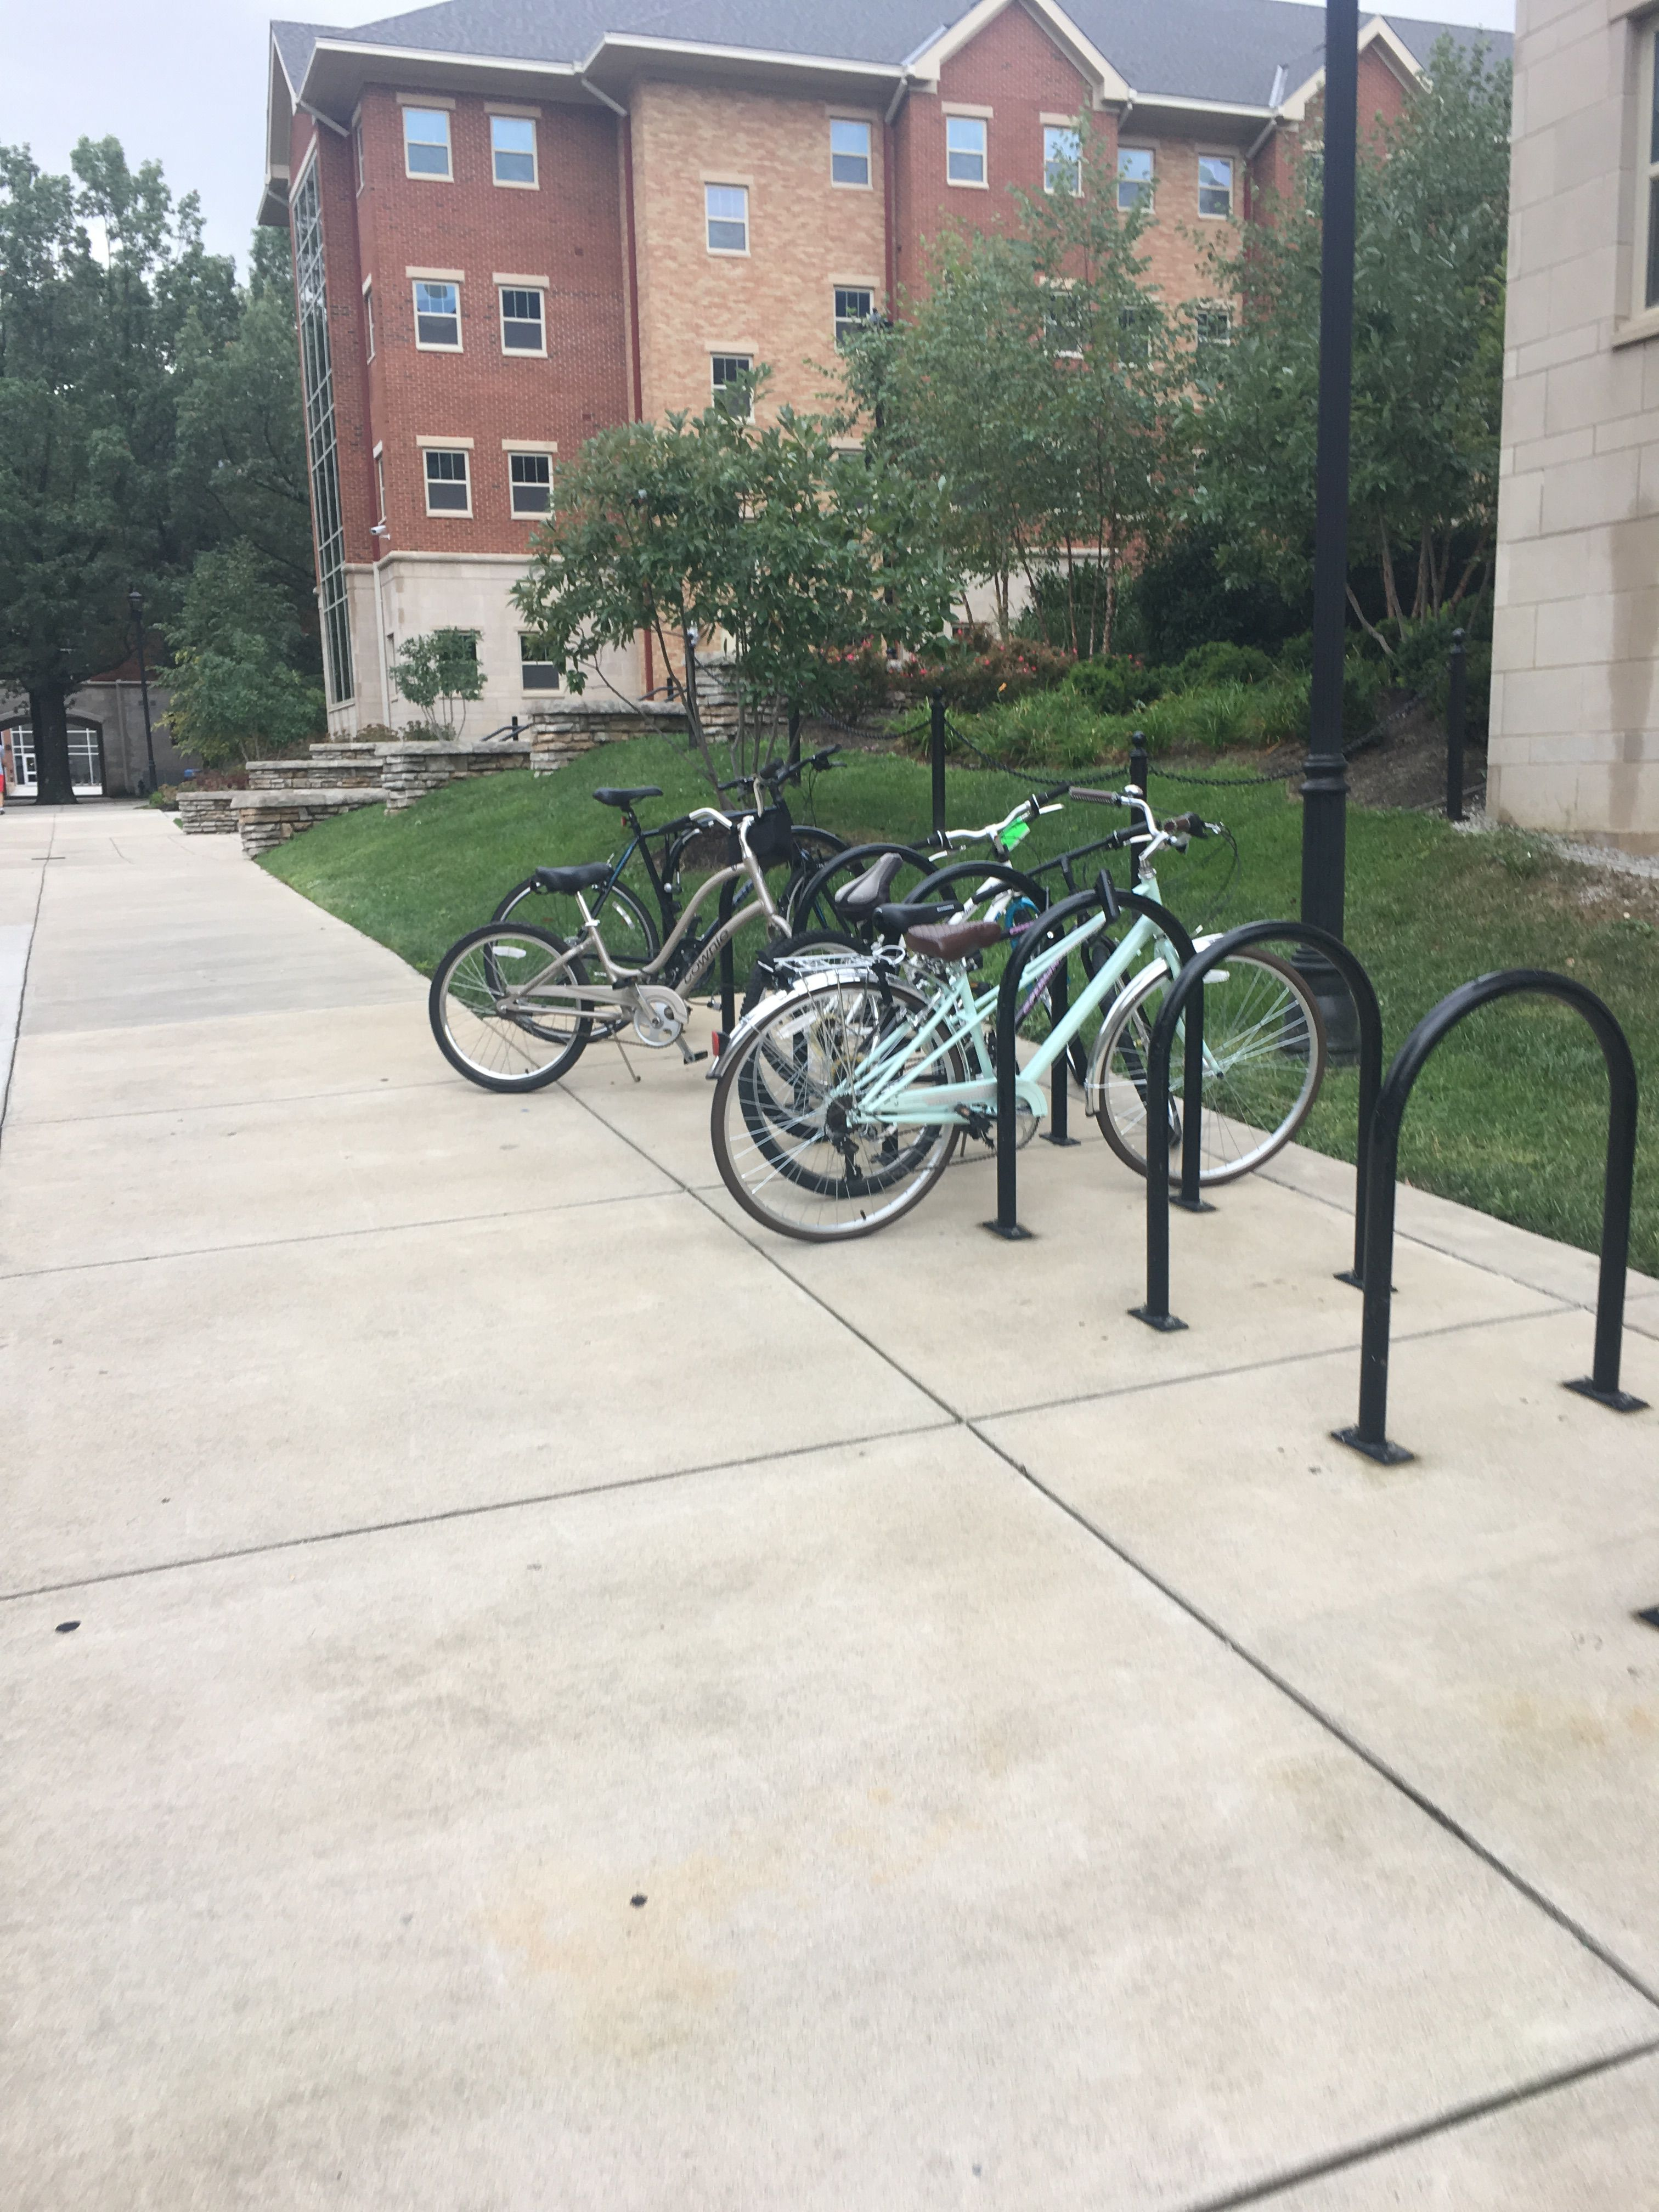 I wonder how many bikes have been stolen on campus. Every time I walk past a bike rack they are all locked up. I also wonder why people would want to bring bikes to campus rather than just walk everywhere.